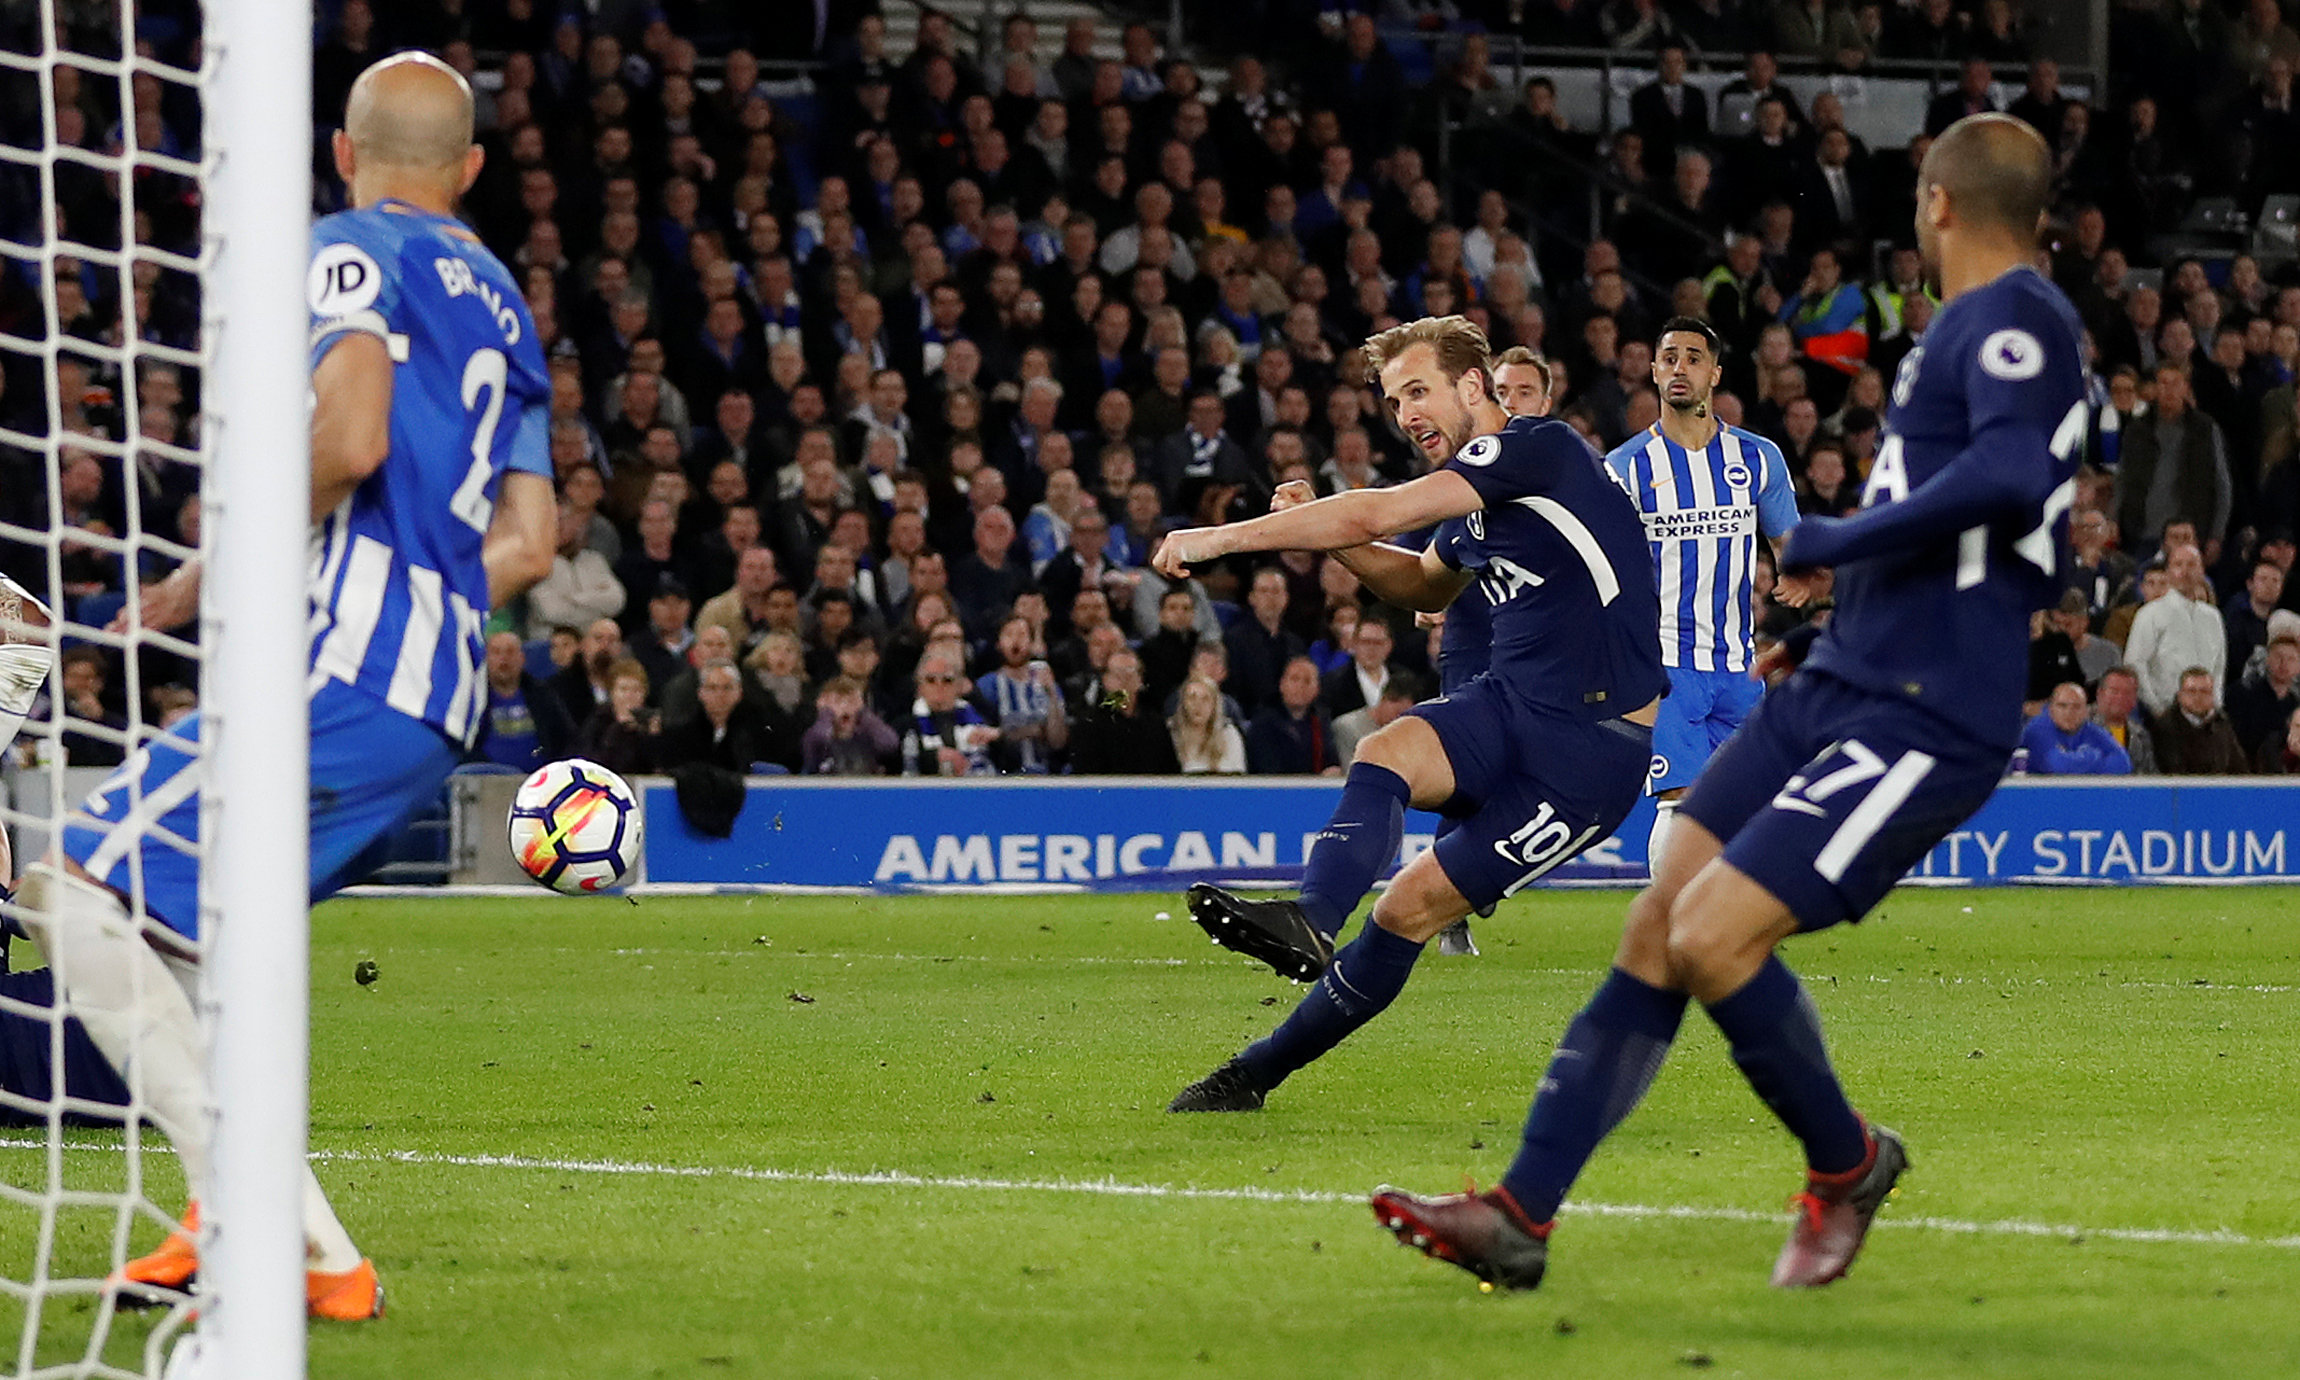 Kane ignites Golden Boot bid as Spurs draw with Brighton